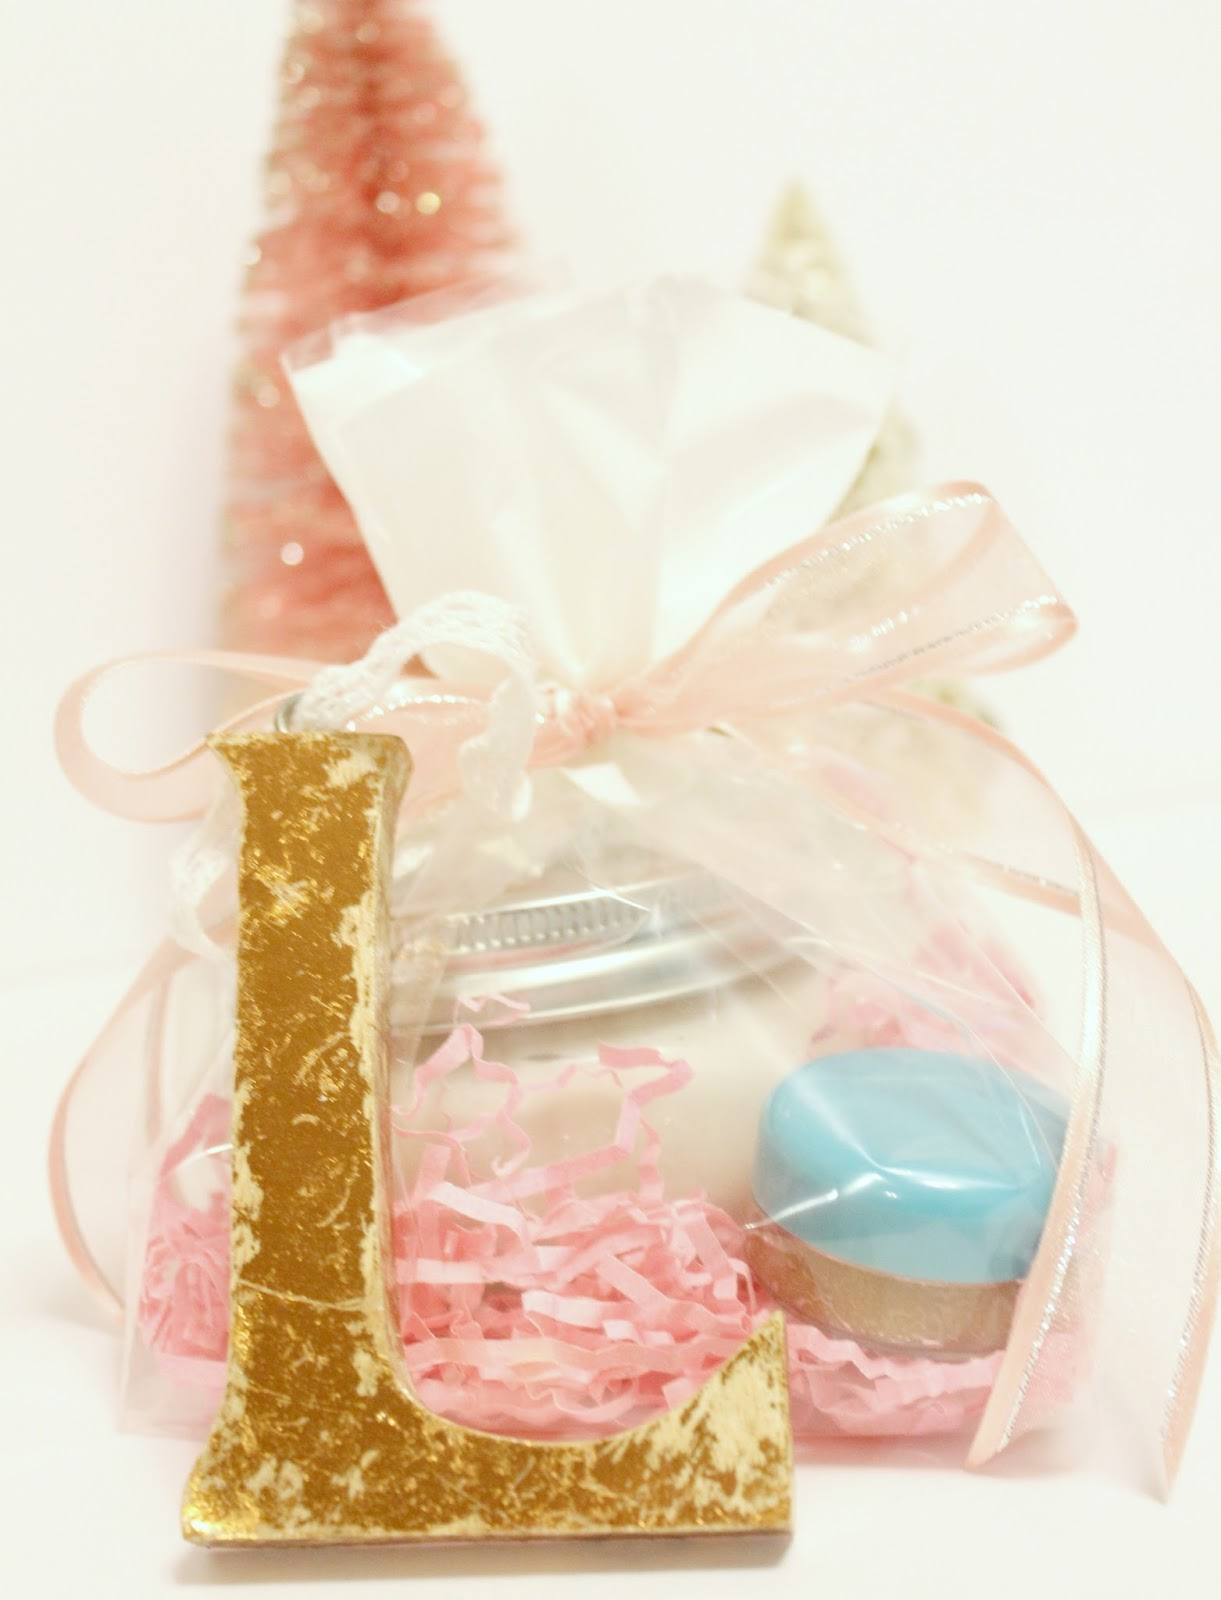 Homemade gift wrap ideas